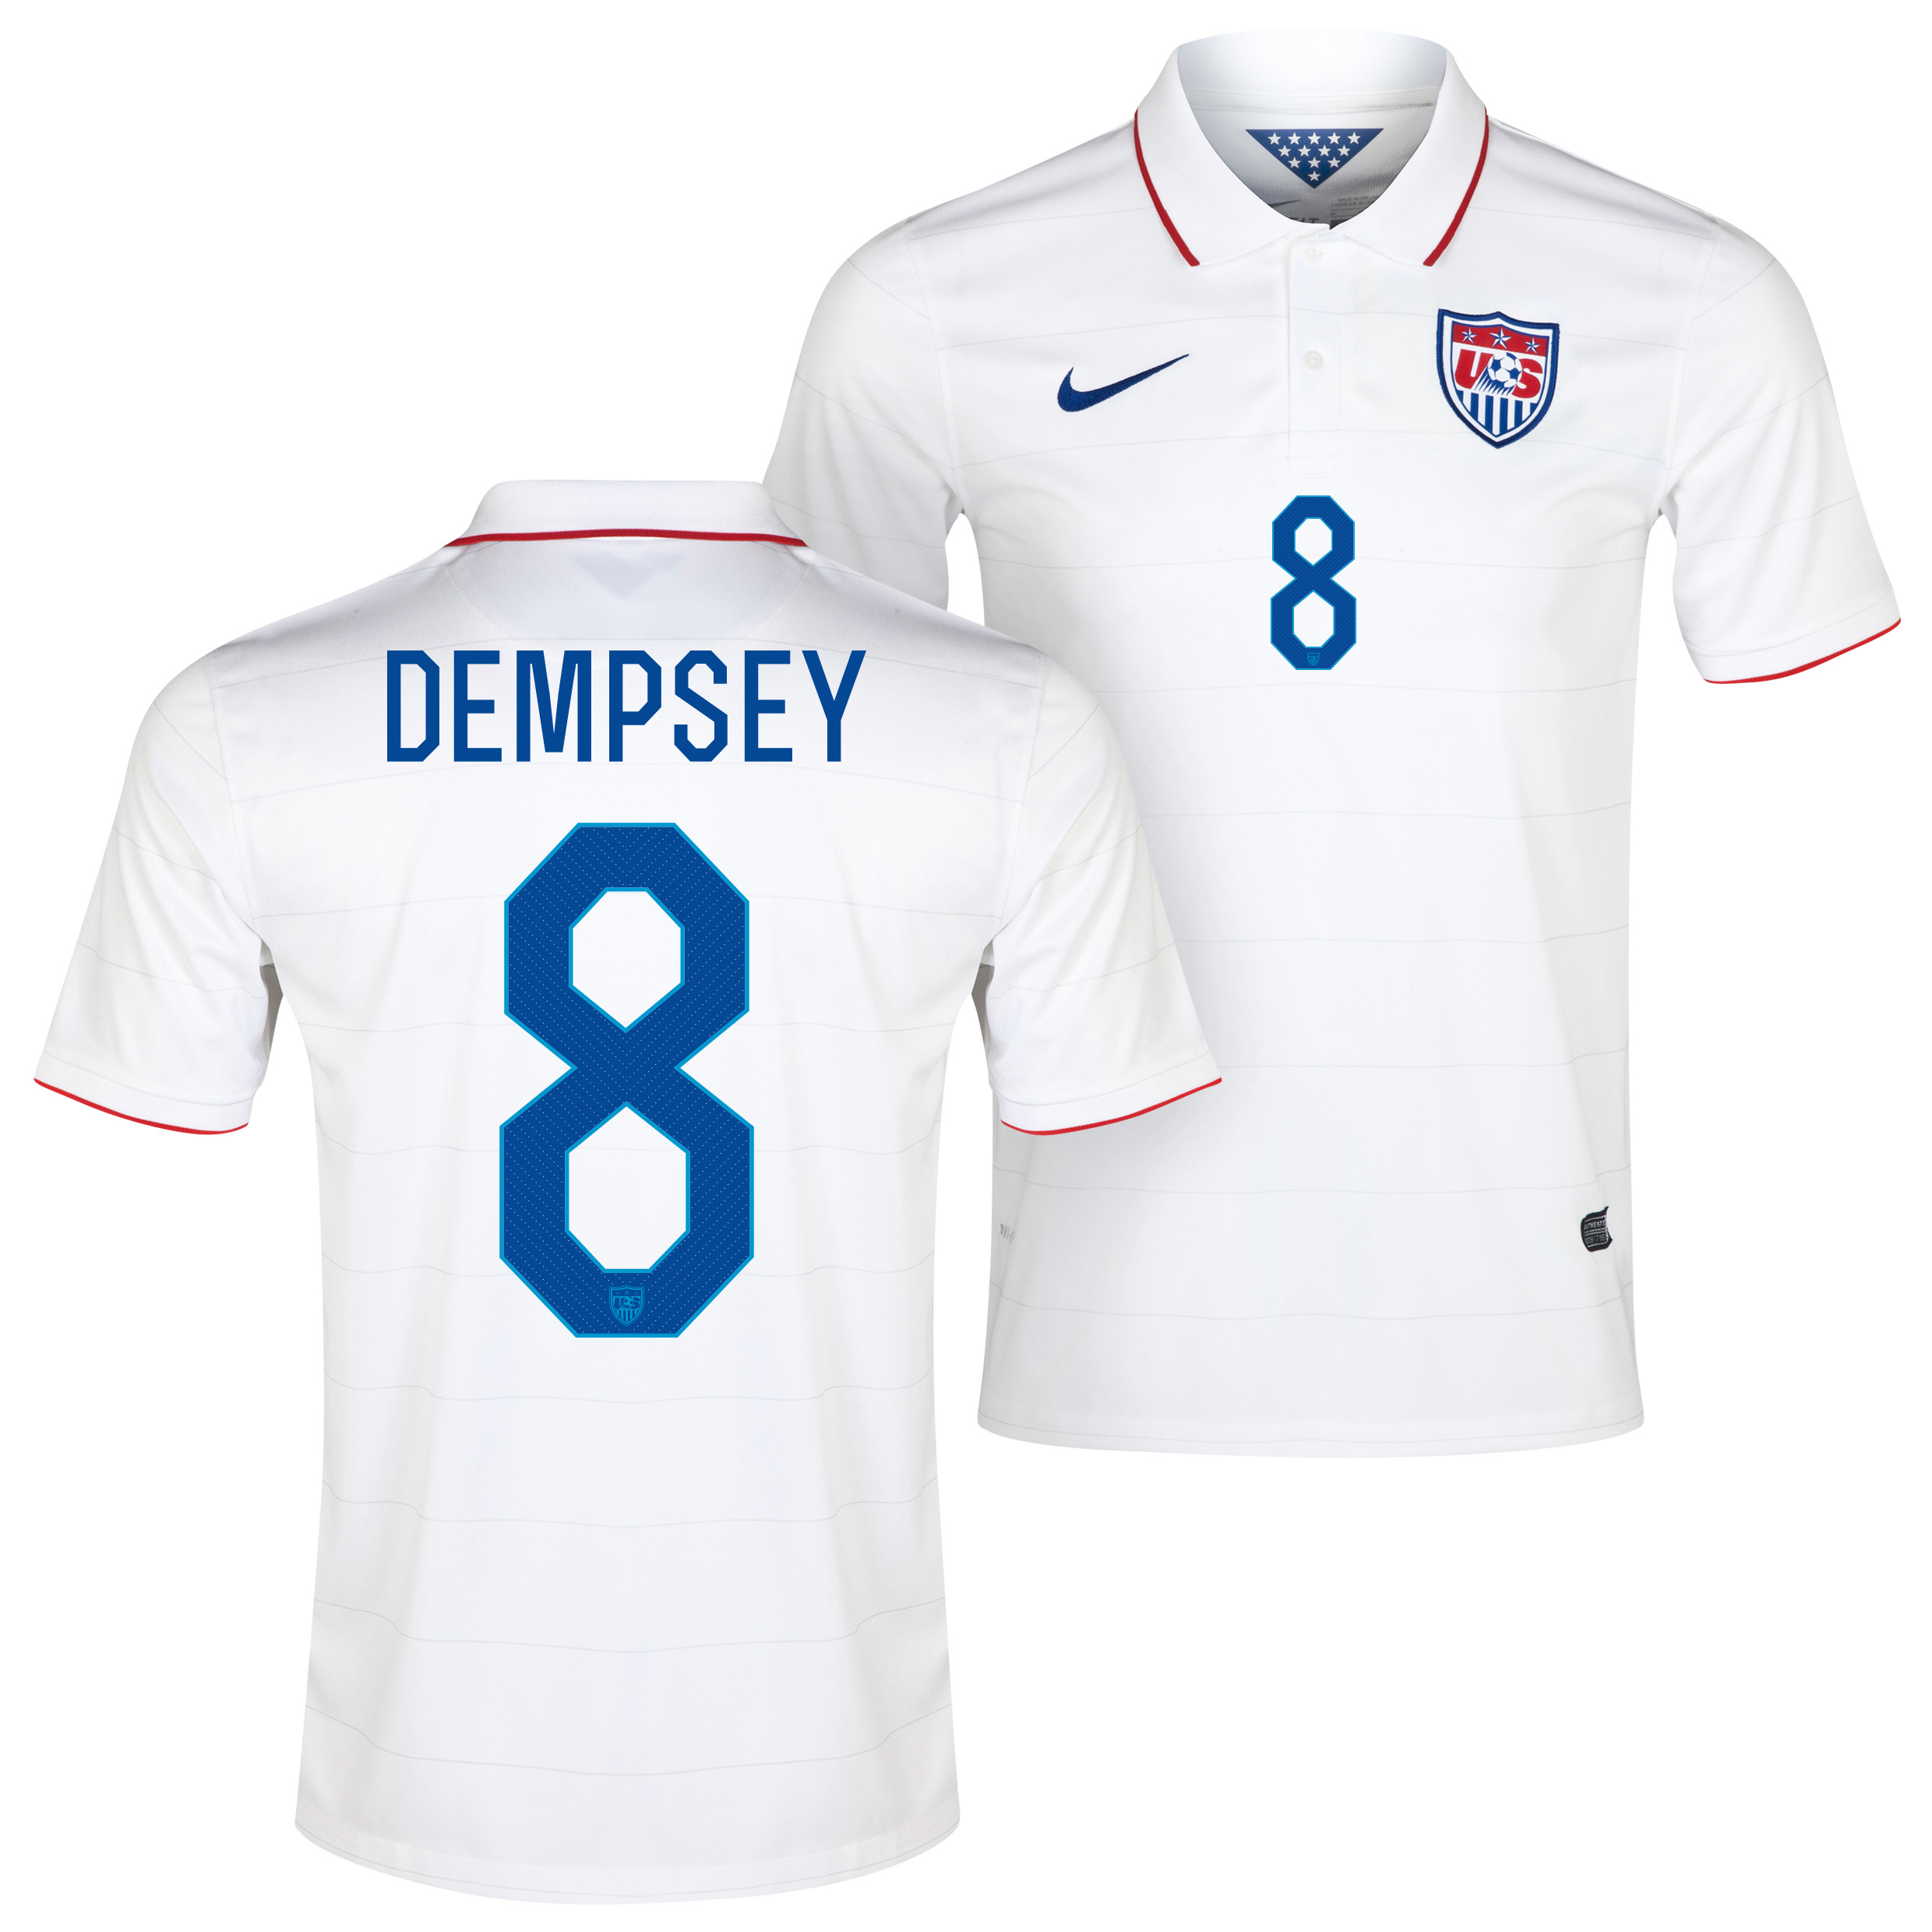 USA Home Shirt 2013/15 White with Dempsey 8 printing